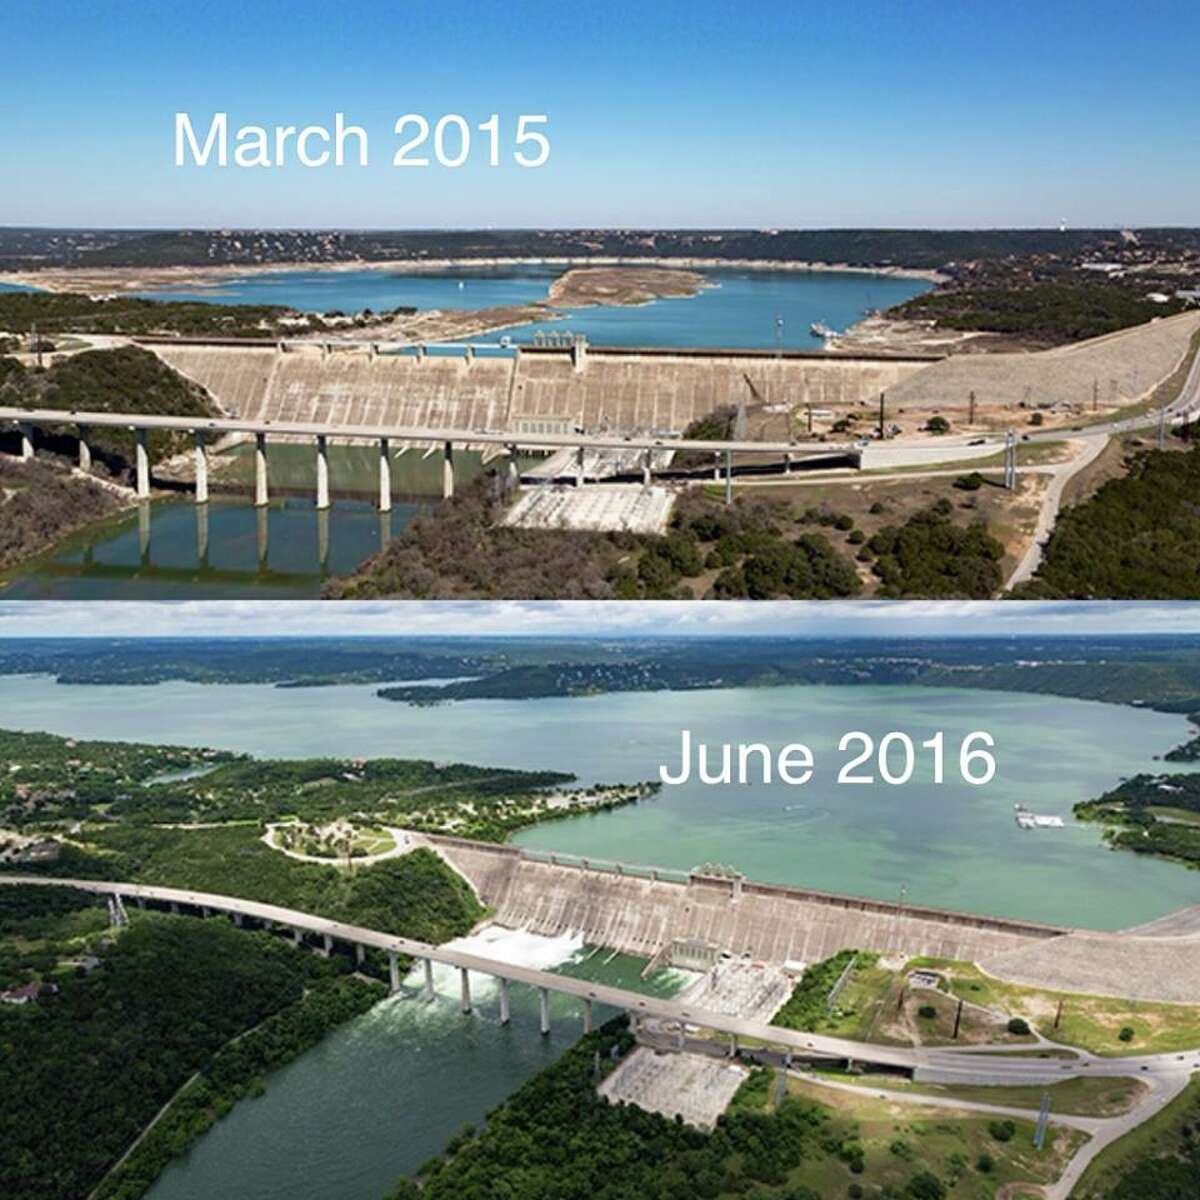 LCRA shared photos of a transformed Lake Travis, which was 35 percent full at this time last year, on June 9, 2016.